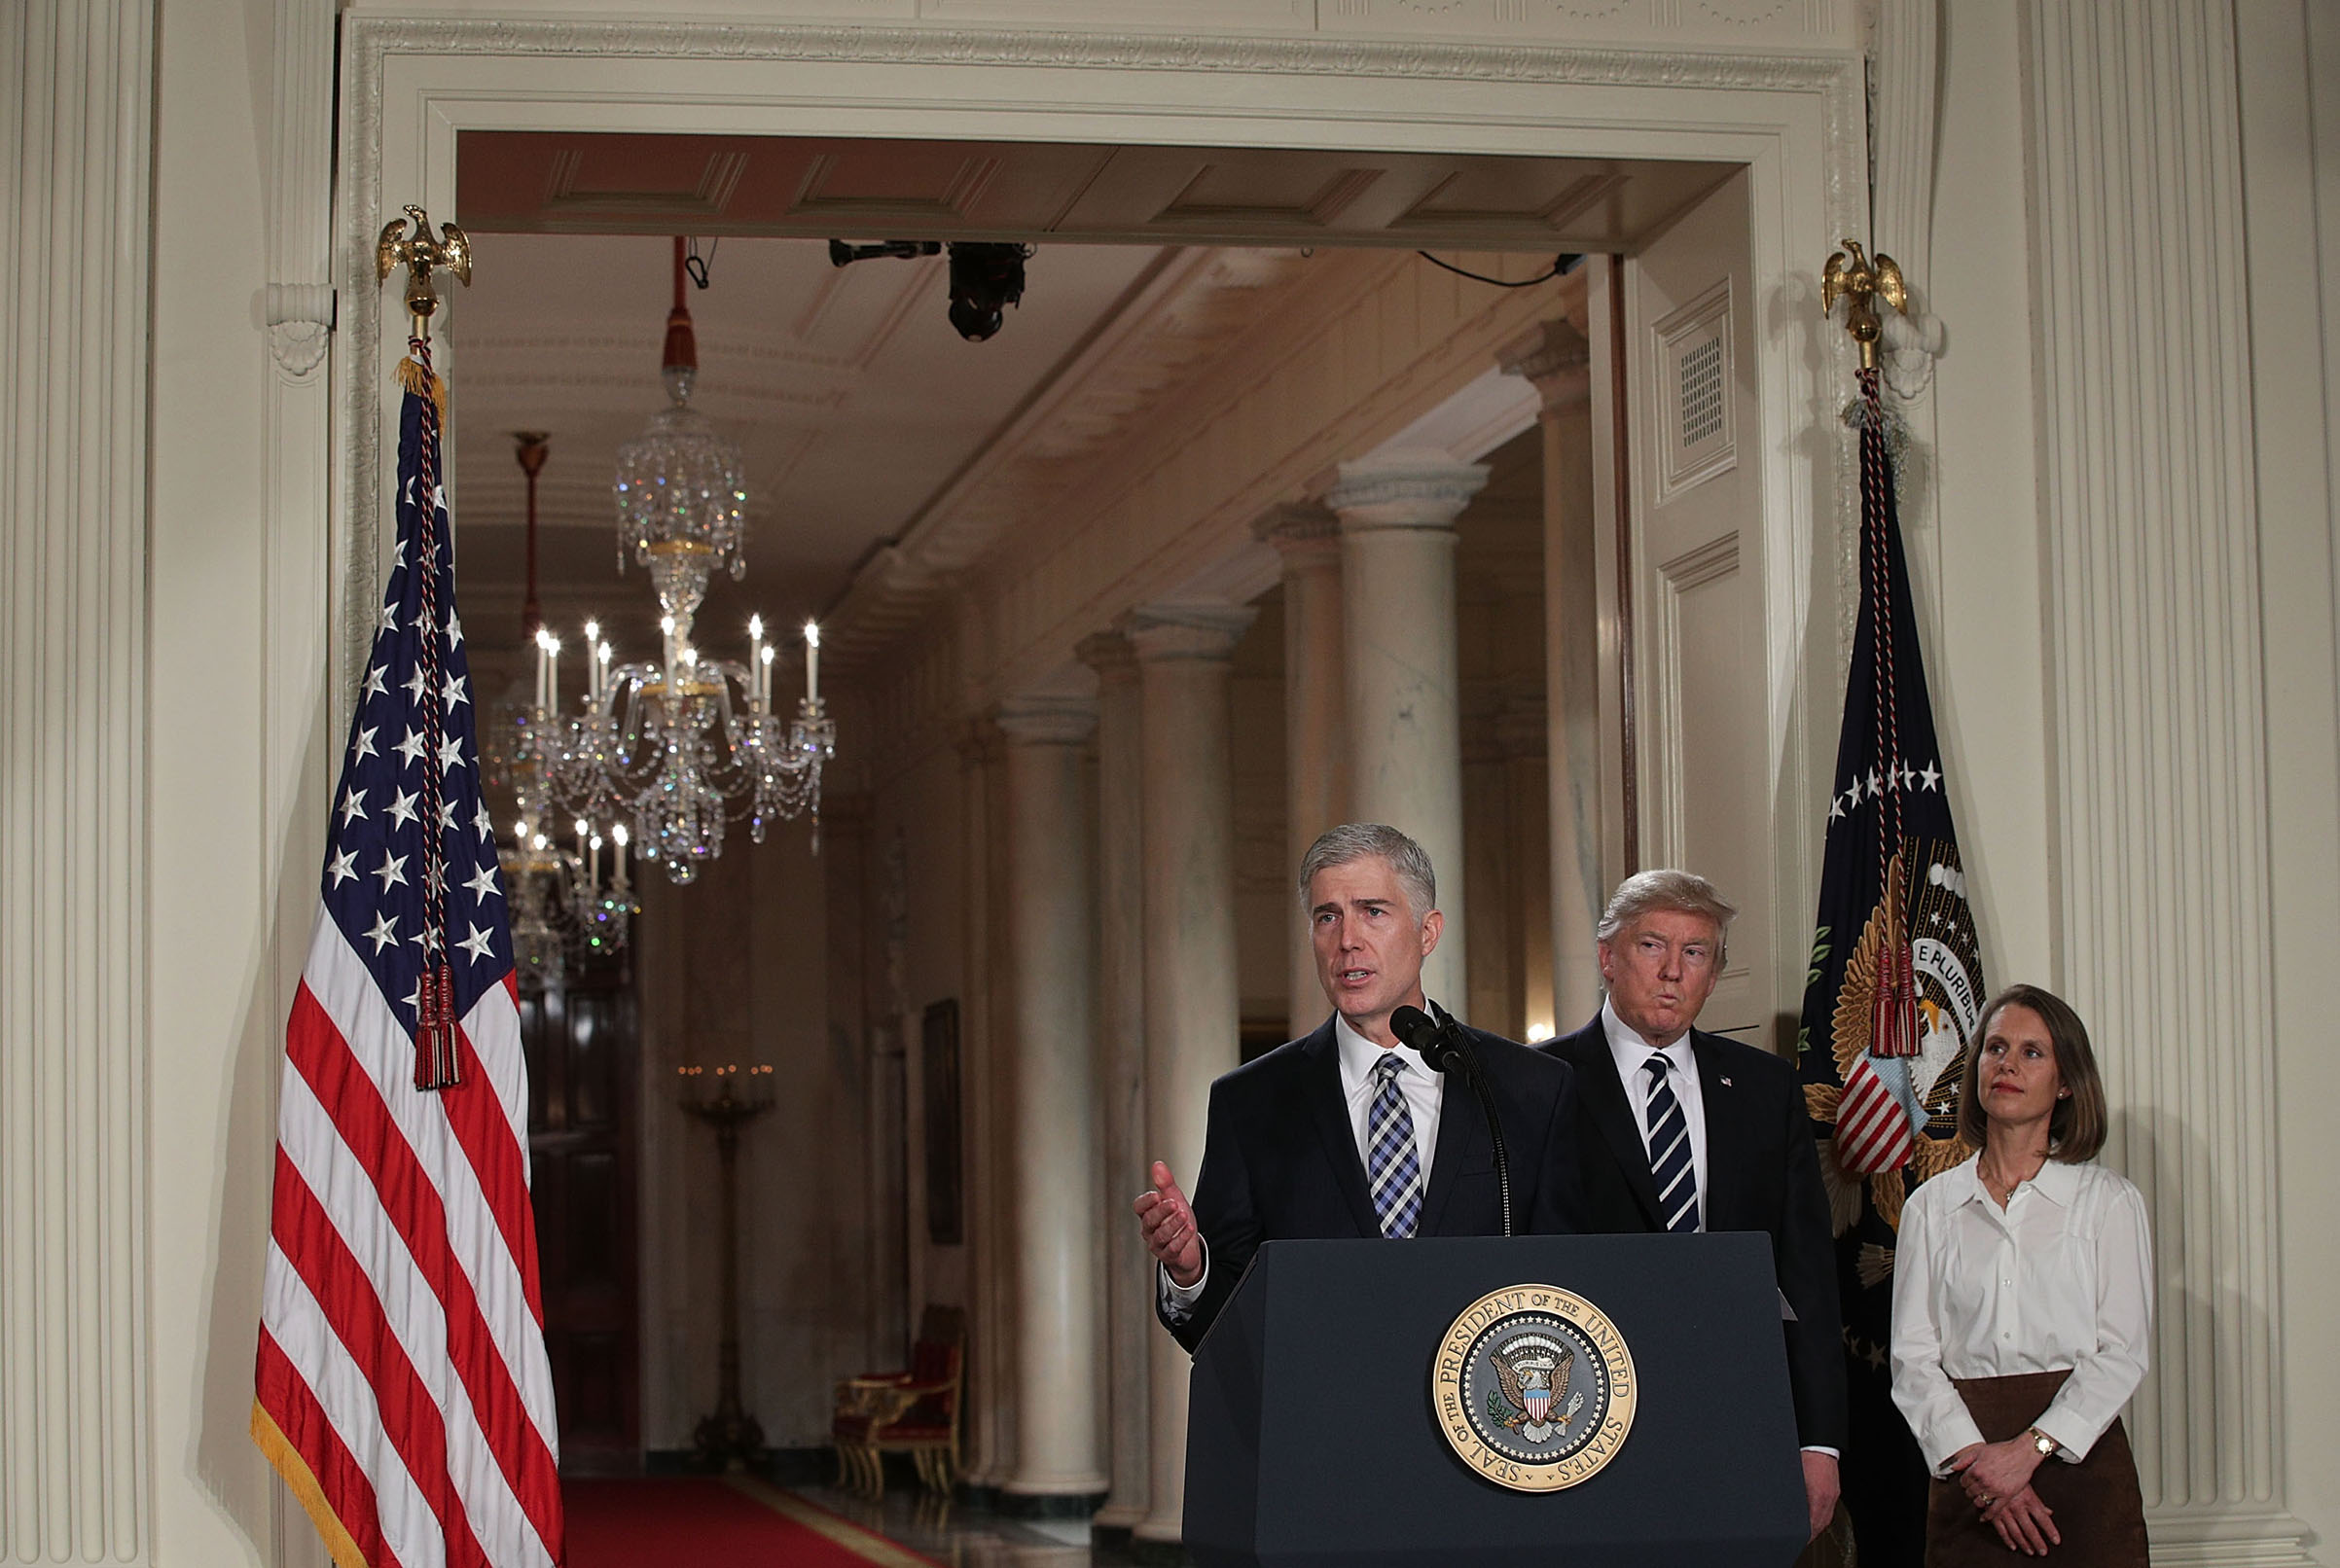 Judge Neil Gorsuch speaks to the crowd on Jan. 31, 2017 after President Donald Trump nominated him to the Supreme Court.